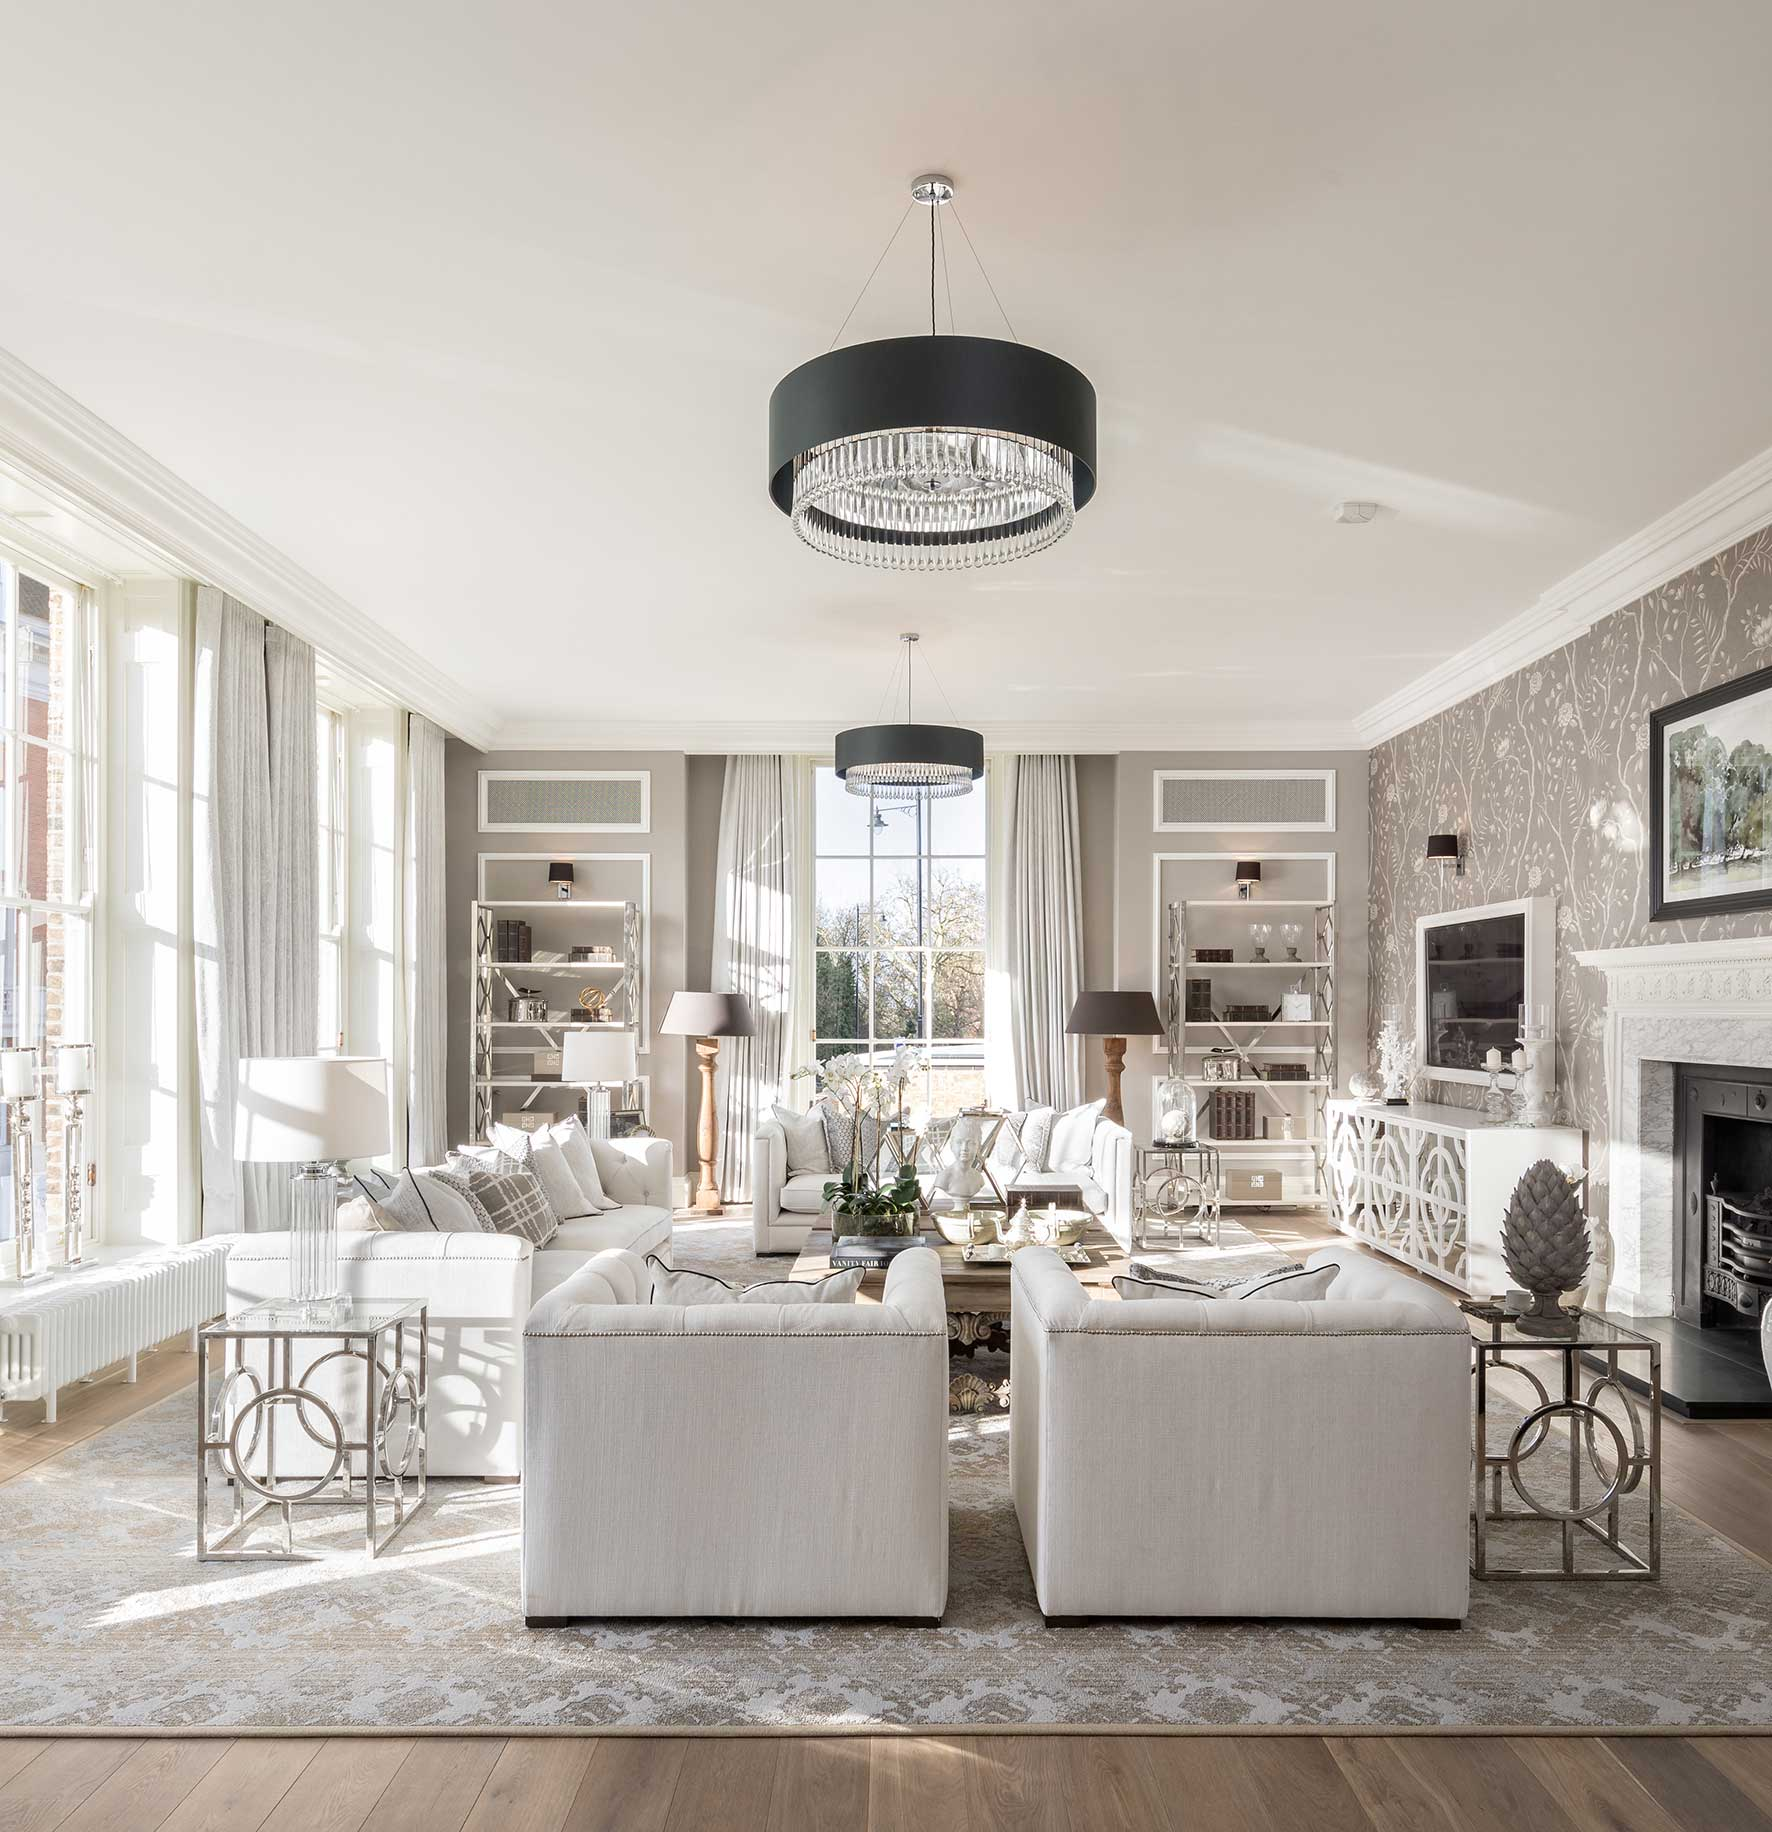 London Square show home by Suna Interior Design at Ancaster-House-005.jpg